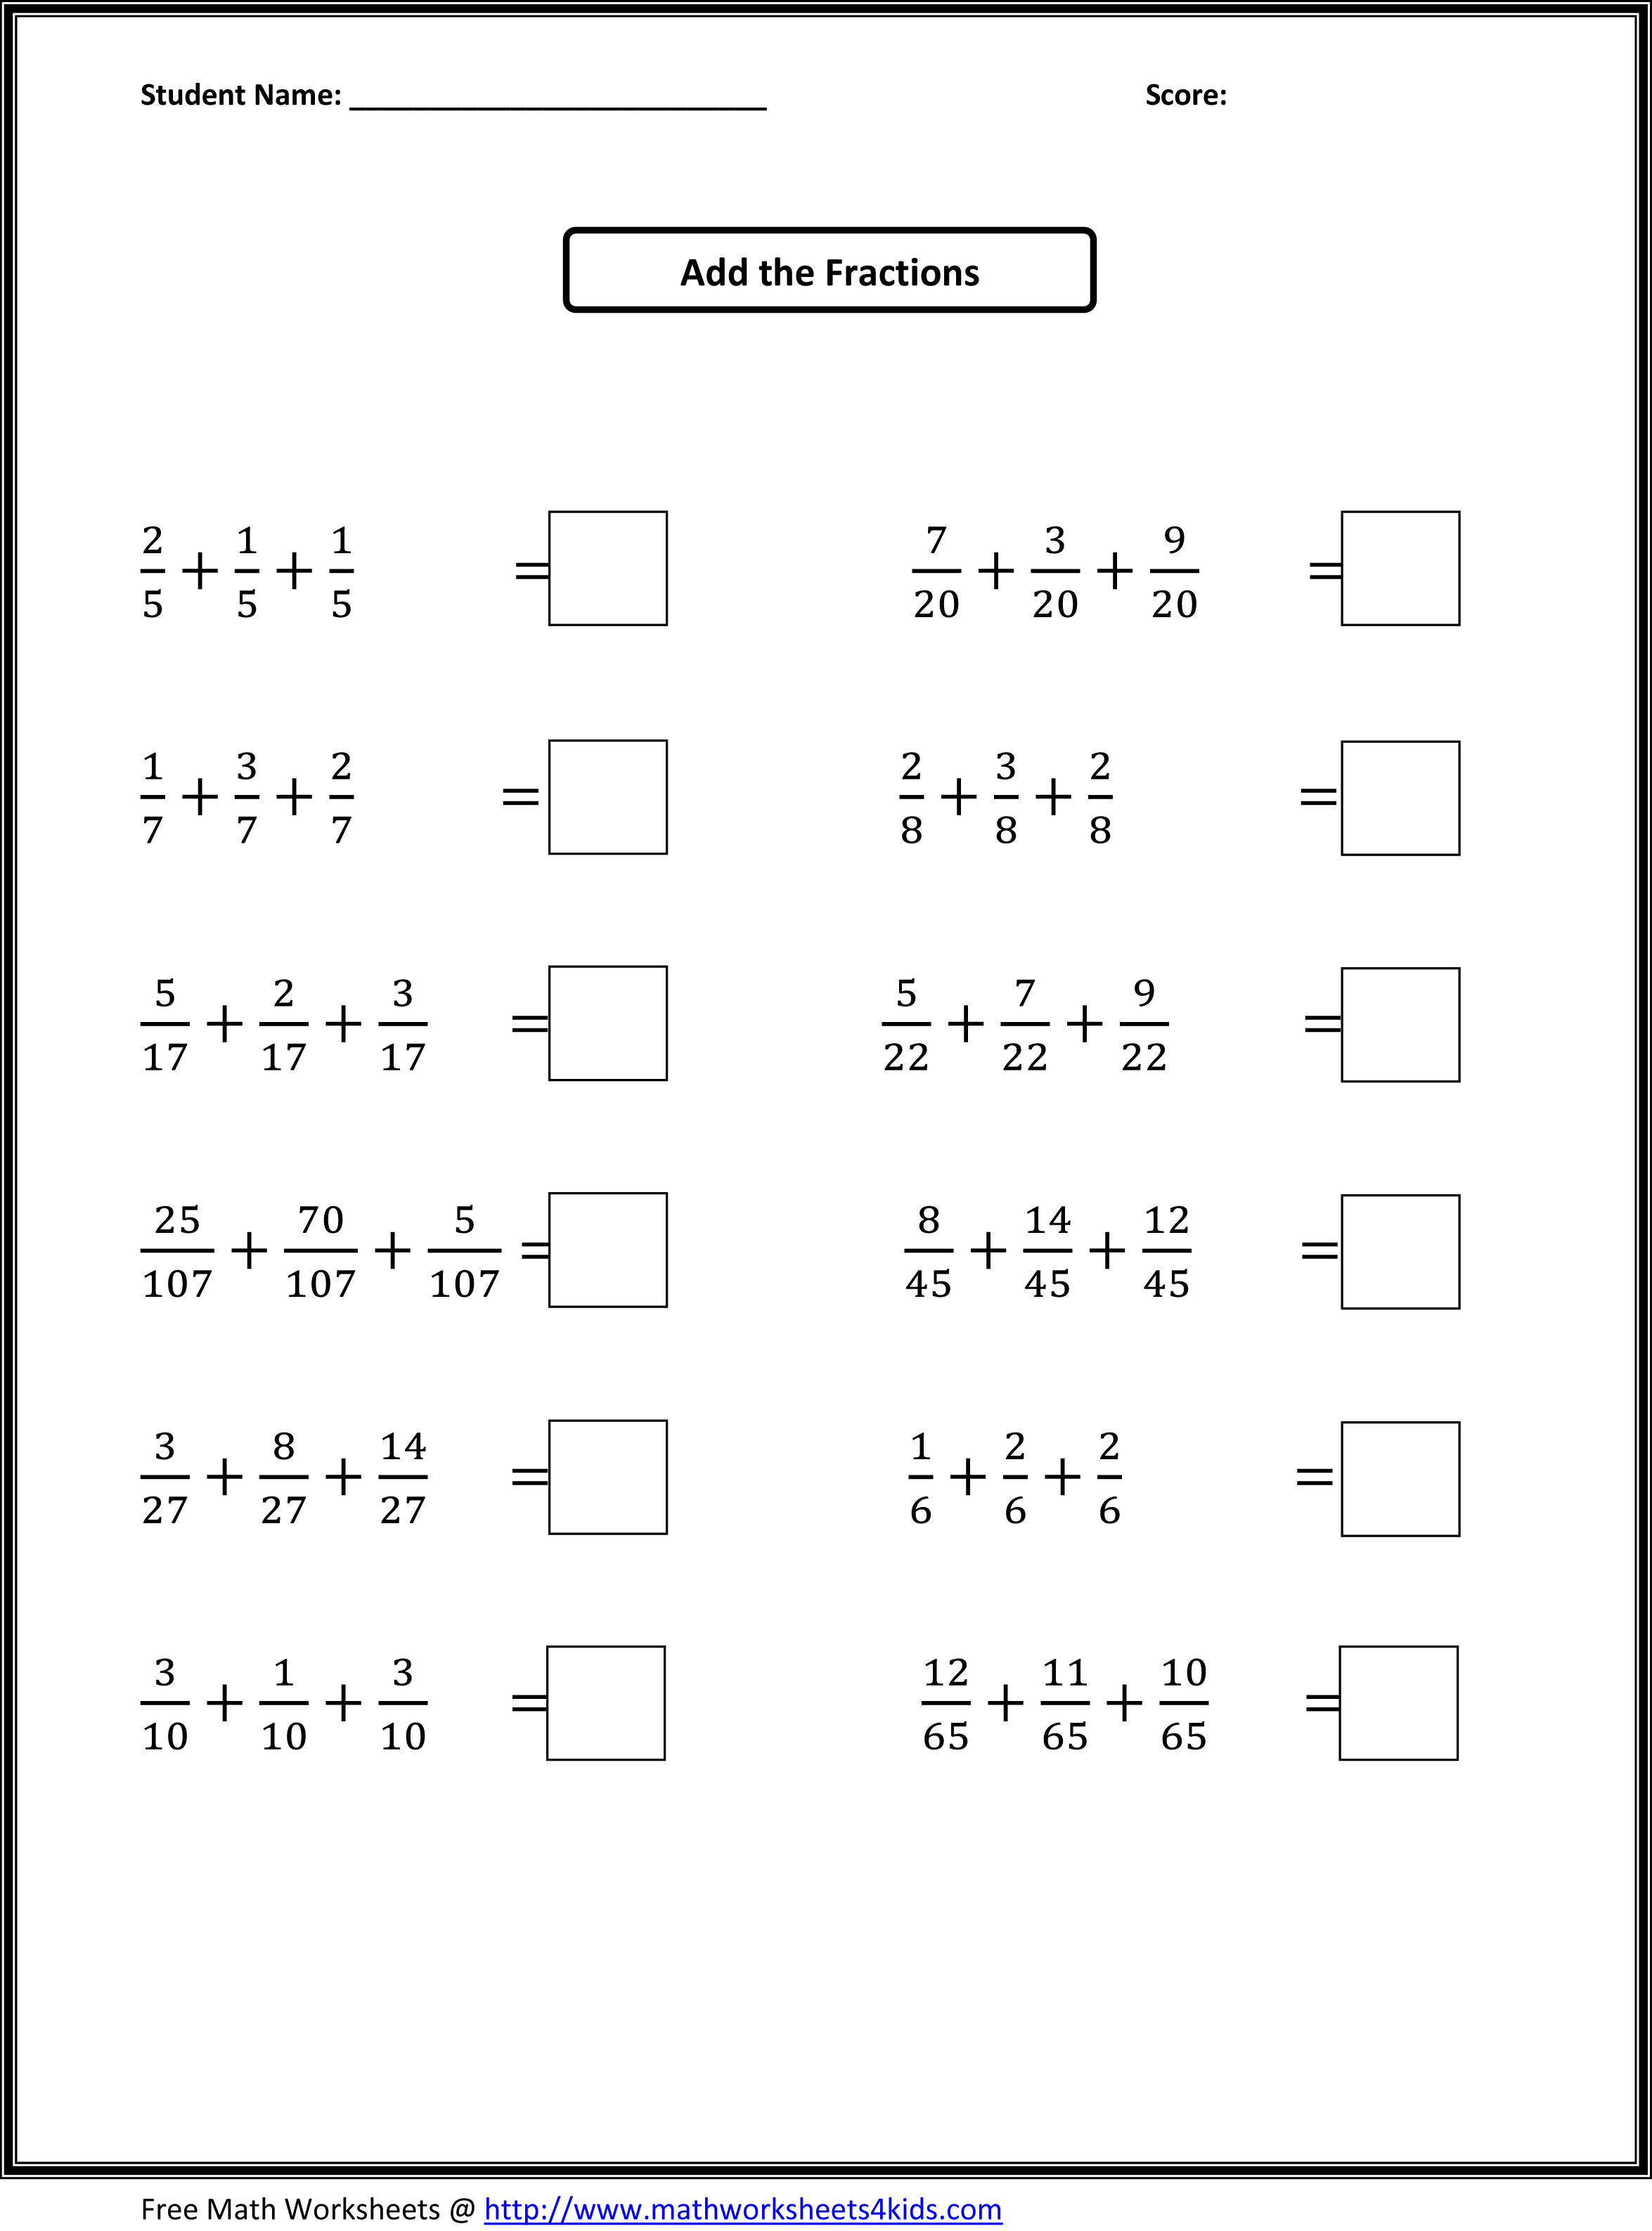 math worksheet : grade 5 math fractions worksheets  worksheets : Class 5 Maths Worksheets